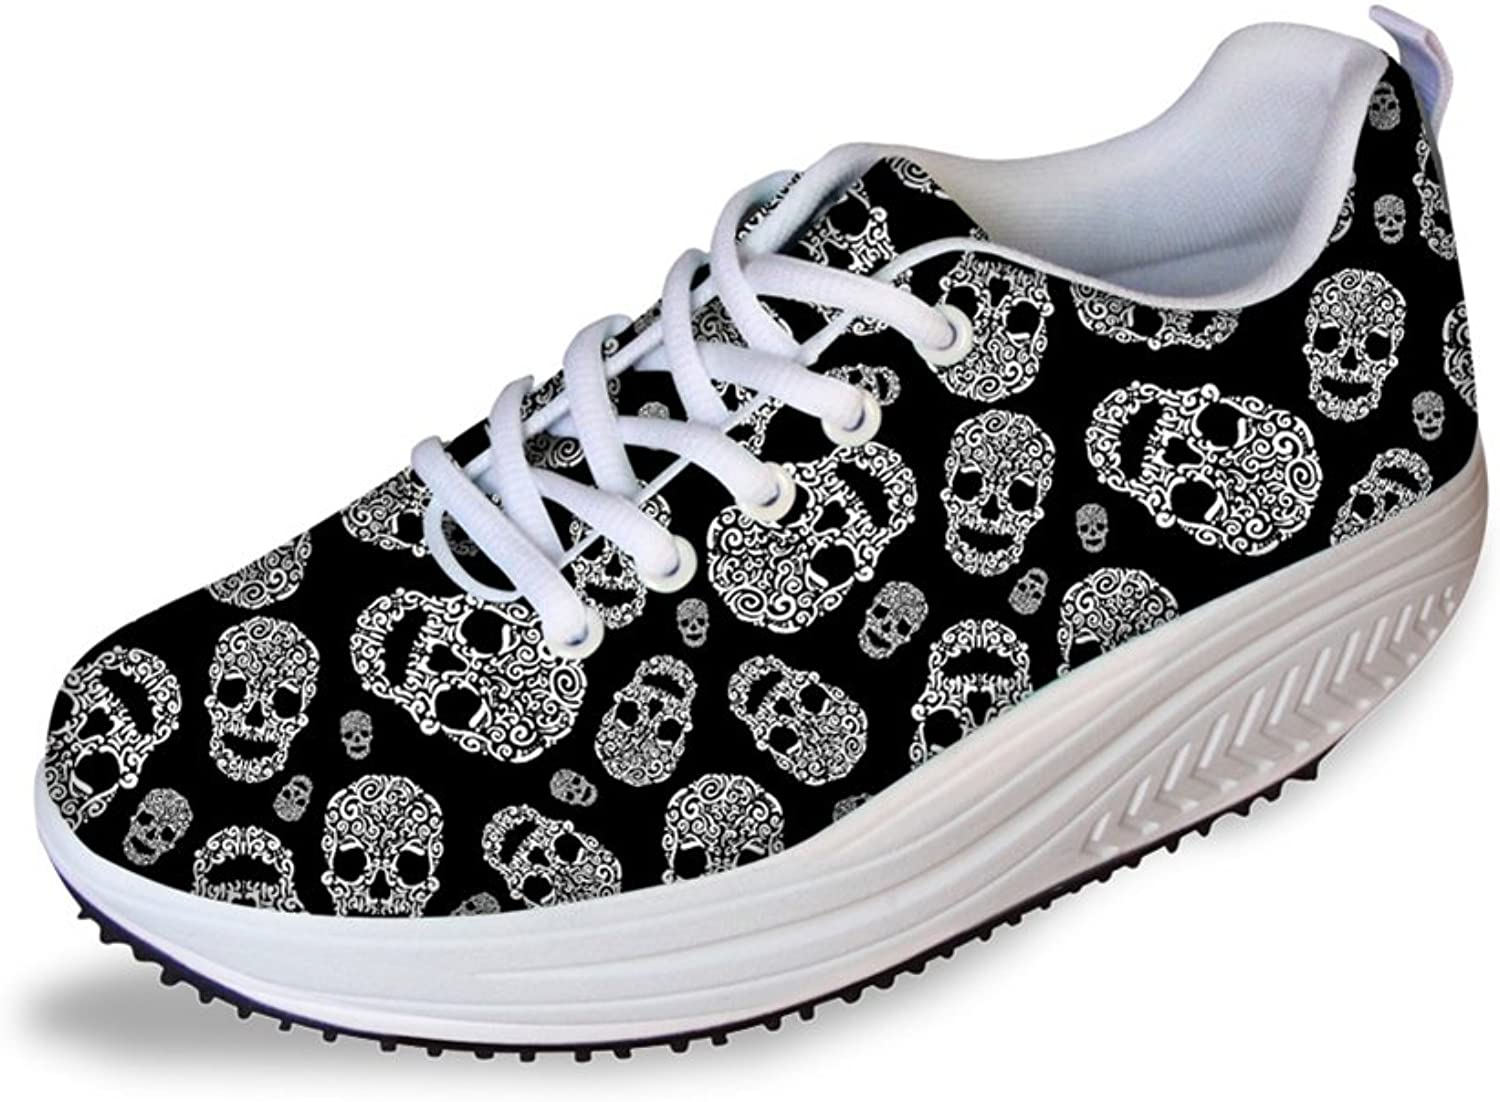 FOR U DESIGNS Fashion Skull Printing Fitness Walking Sneaker Casual Women's Wedges Platform shoes